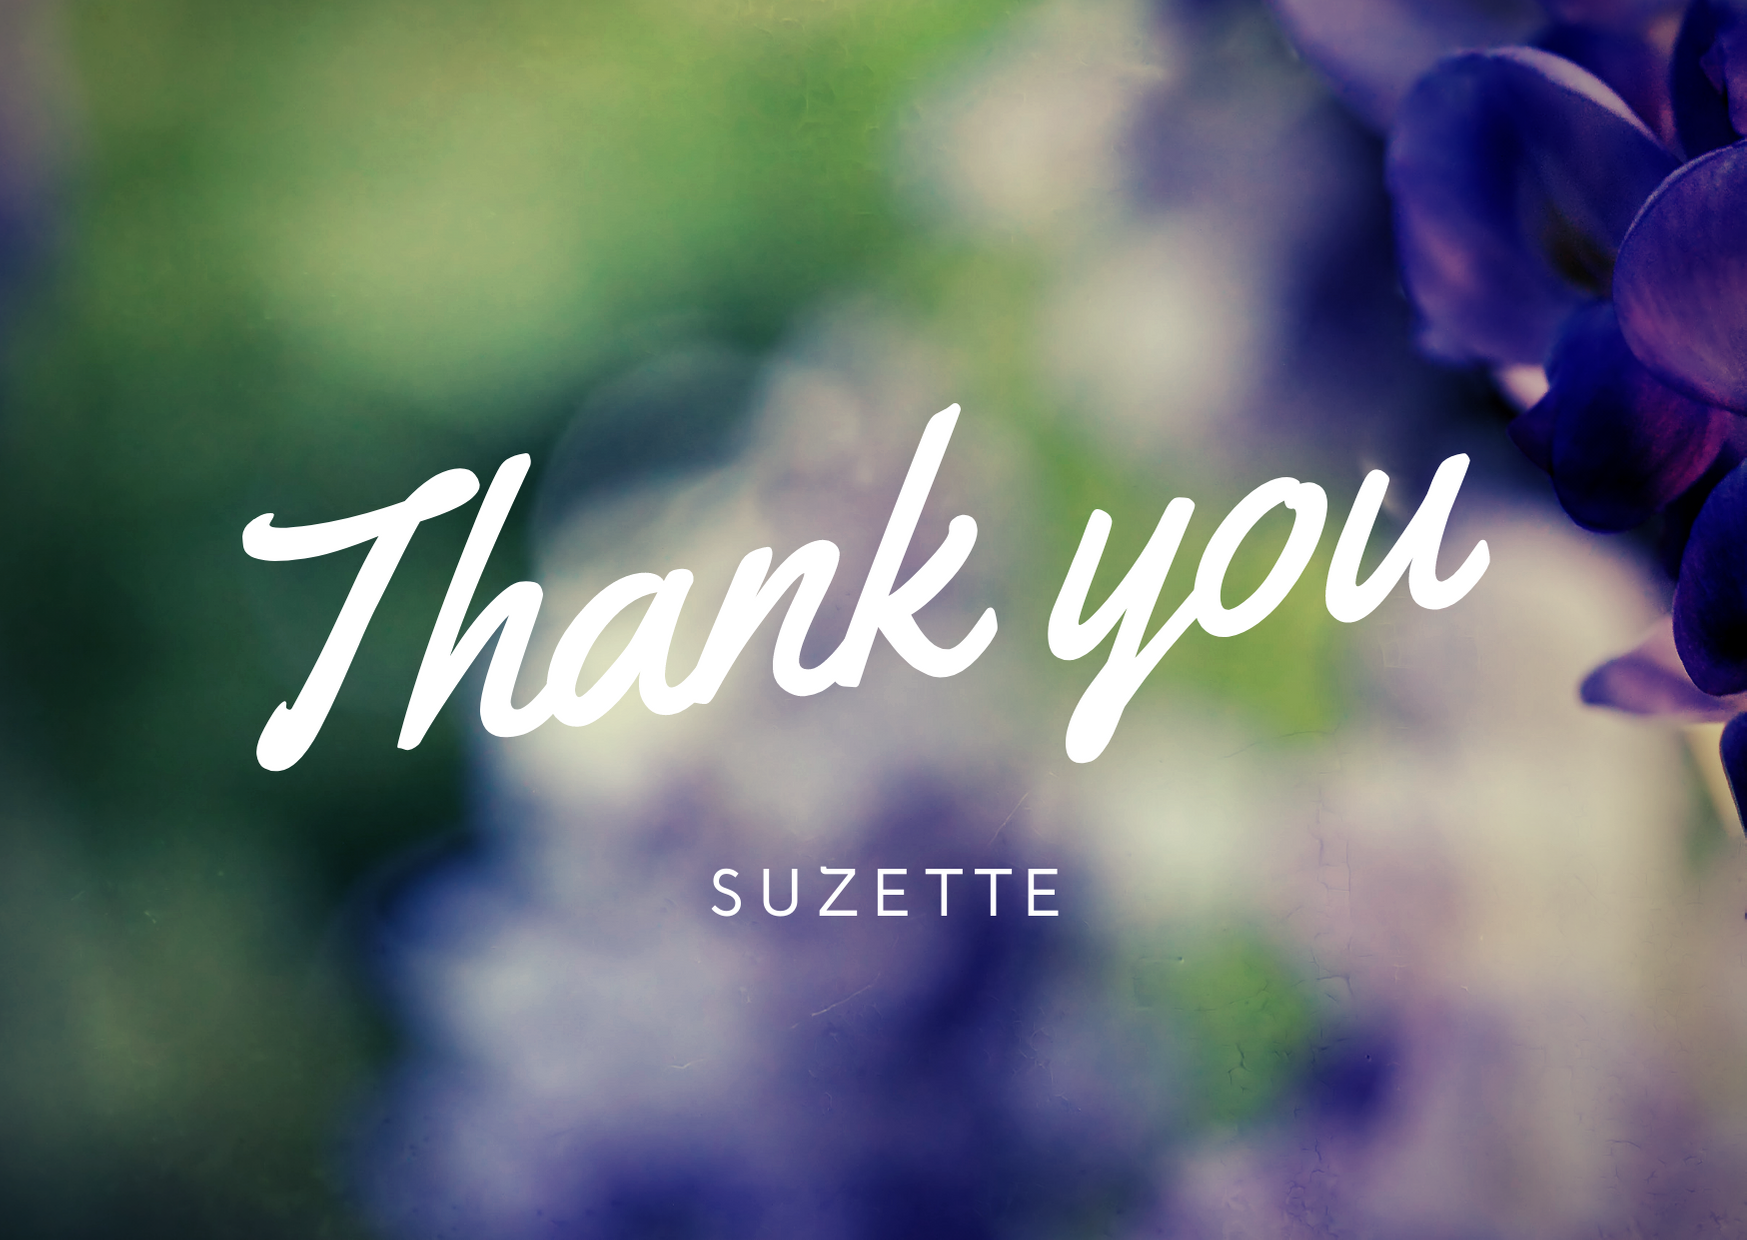 Thank You Suzette